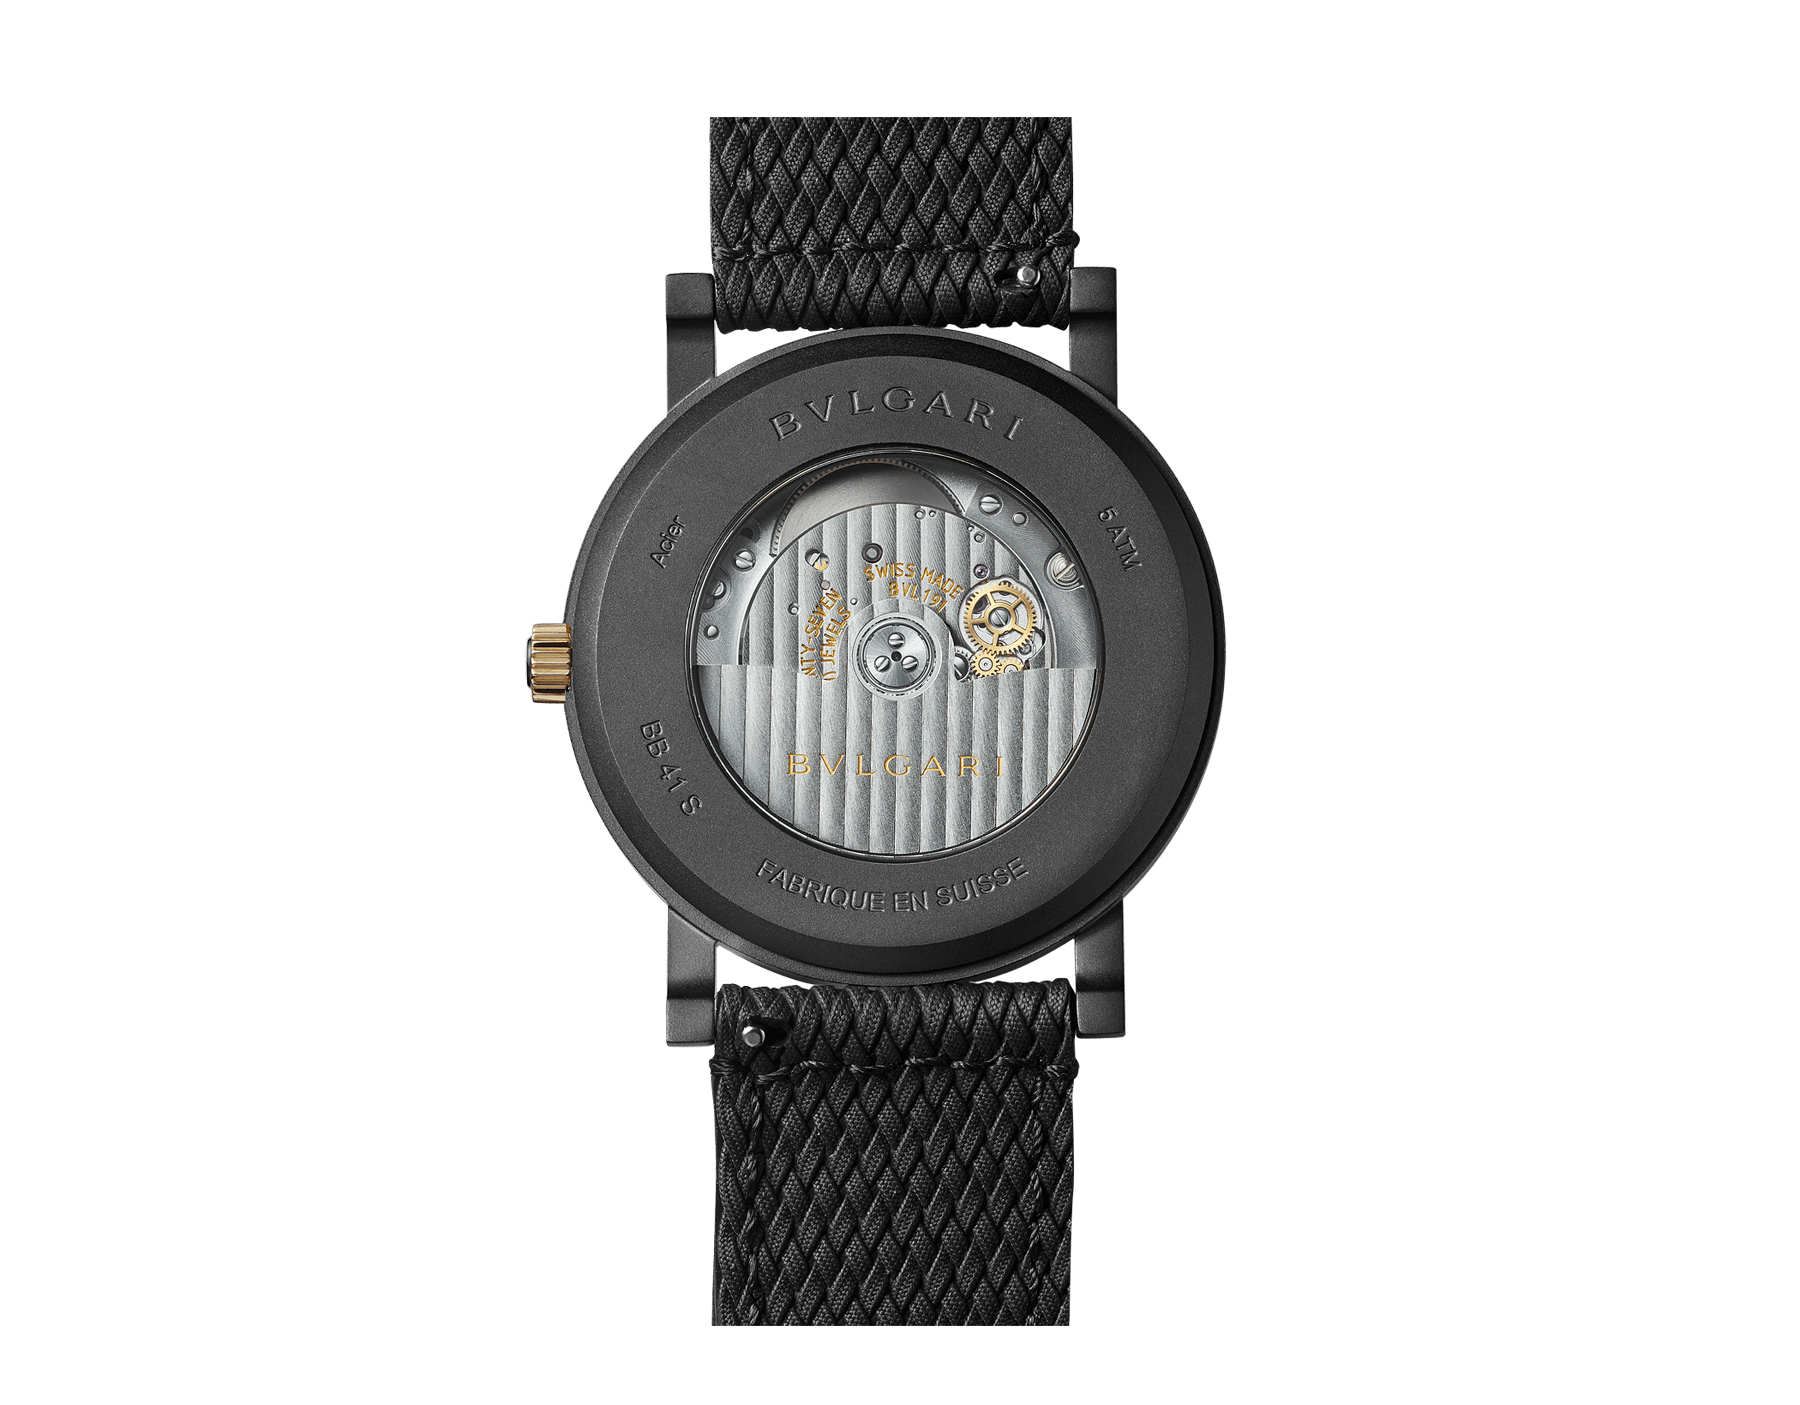 BVLGARI BVLGARI Solotempo watch with mechanical manufacture movement, automatic winding and date, stainless steel case treated with black Diamond Like Carbon and bezel engraved with double logo, black dial, black rubber bracelet and interchangeable brown calf leather bracelet 102929 image 4